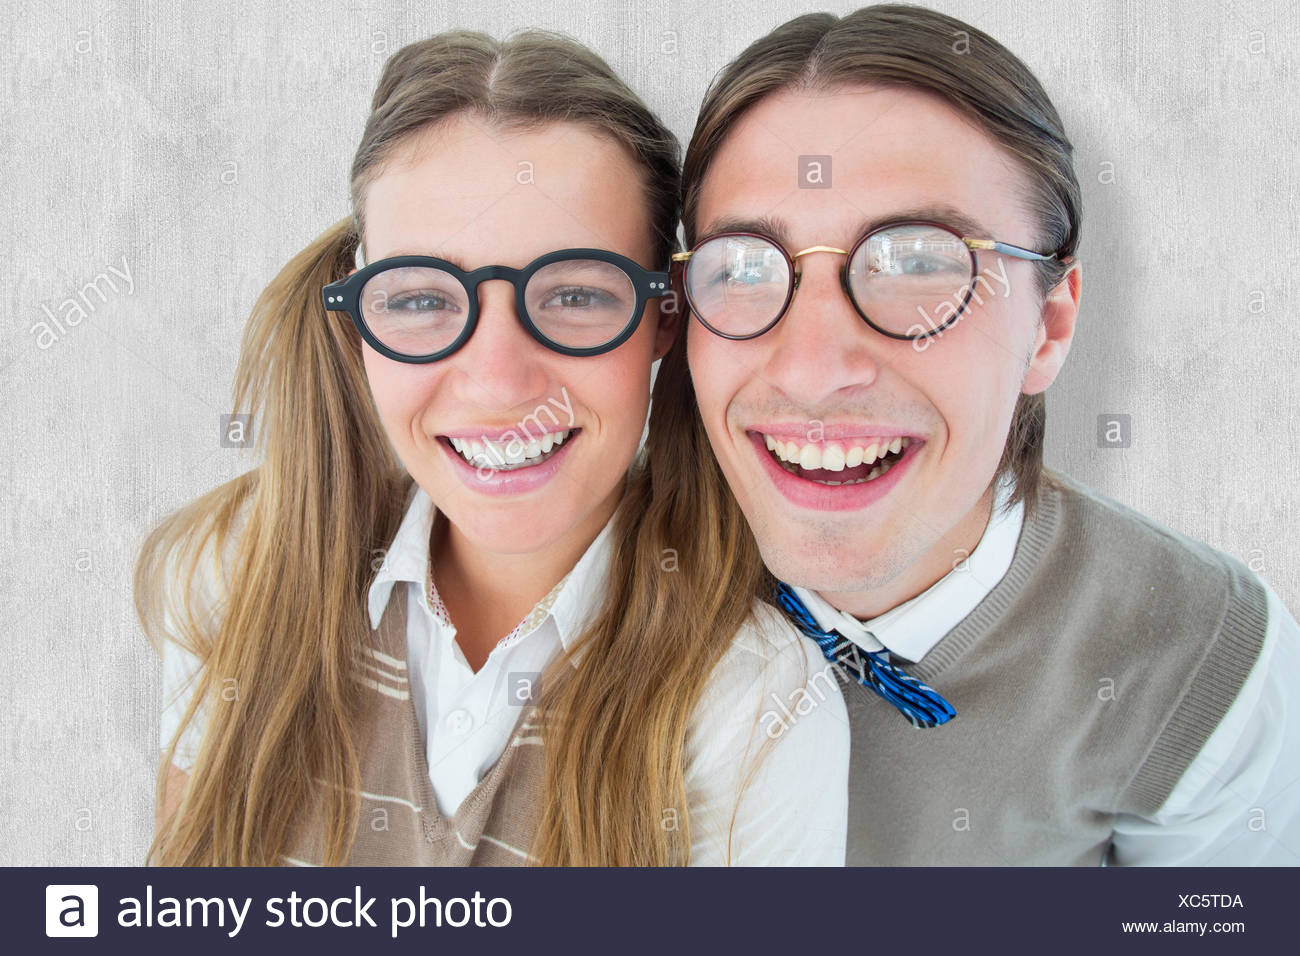 Composite image of geeky hipsters smiling at camera Stock Photo